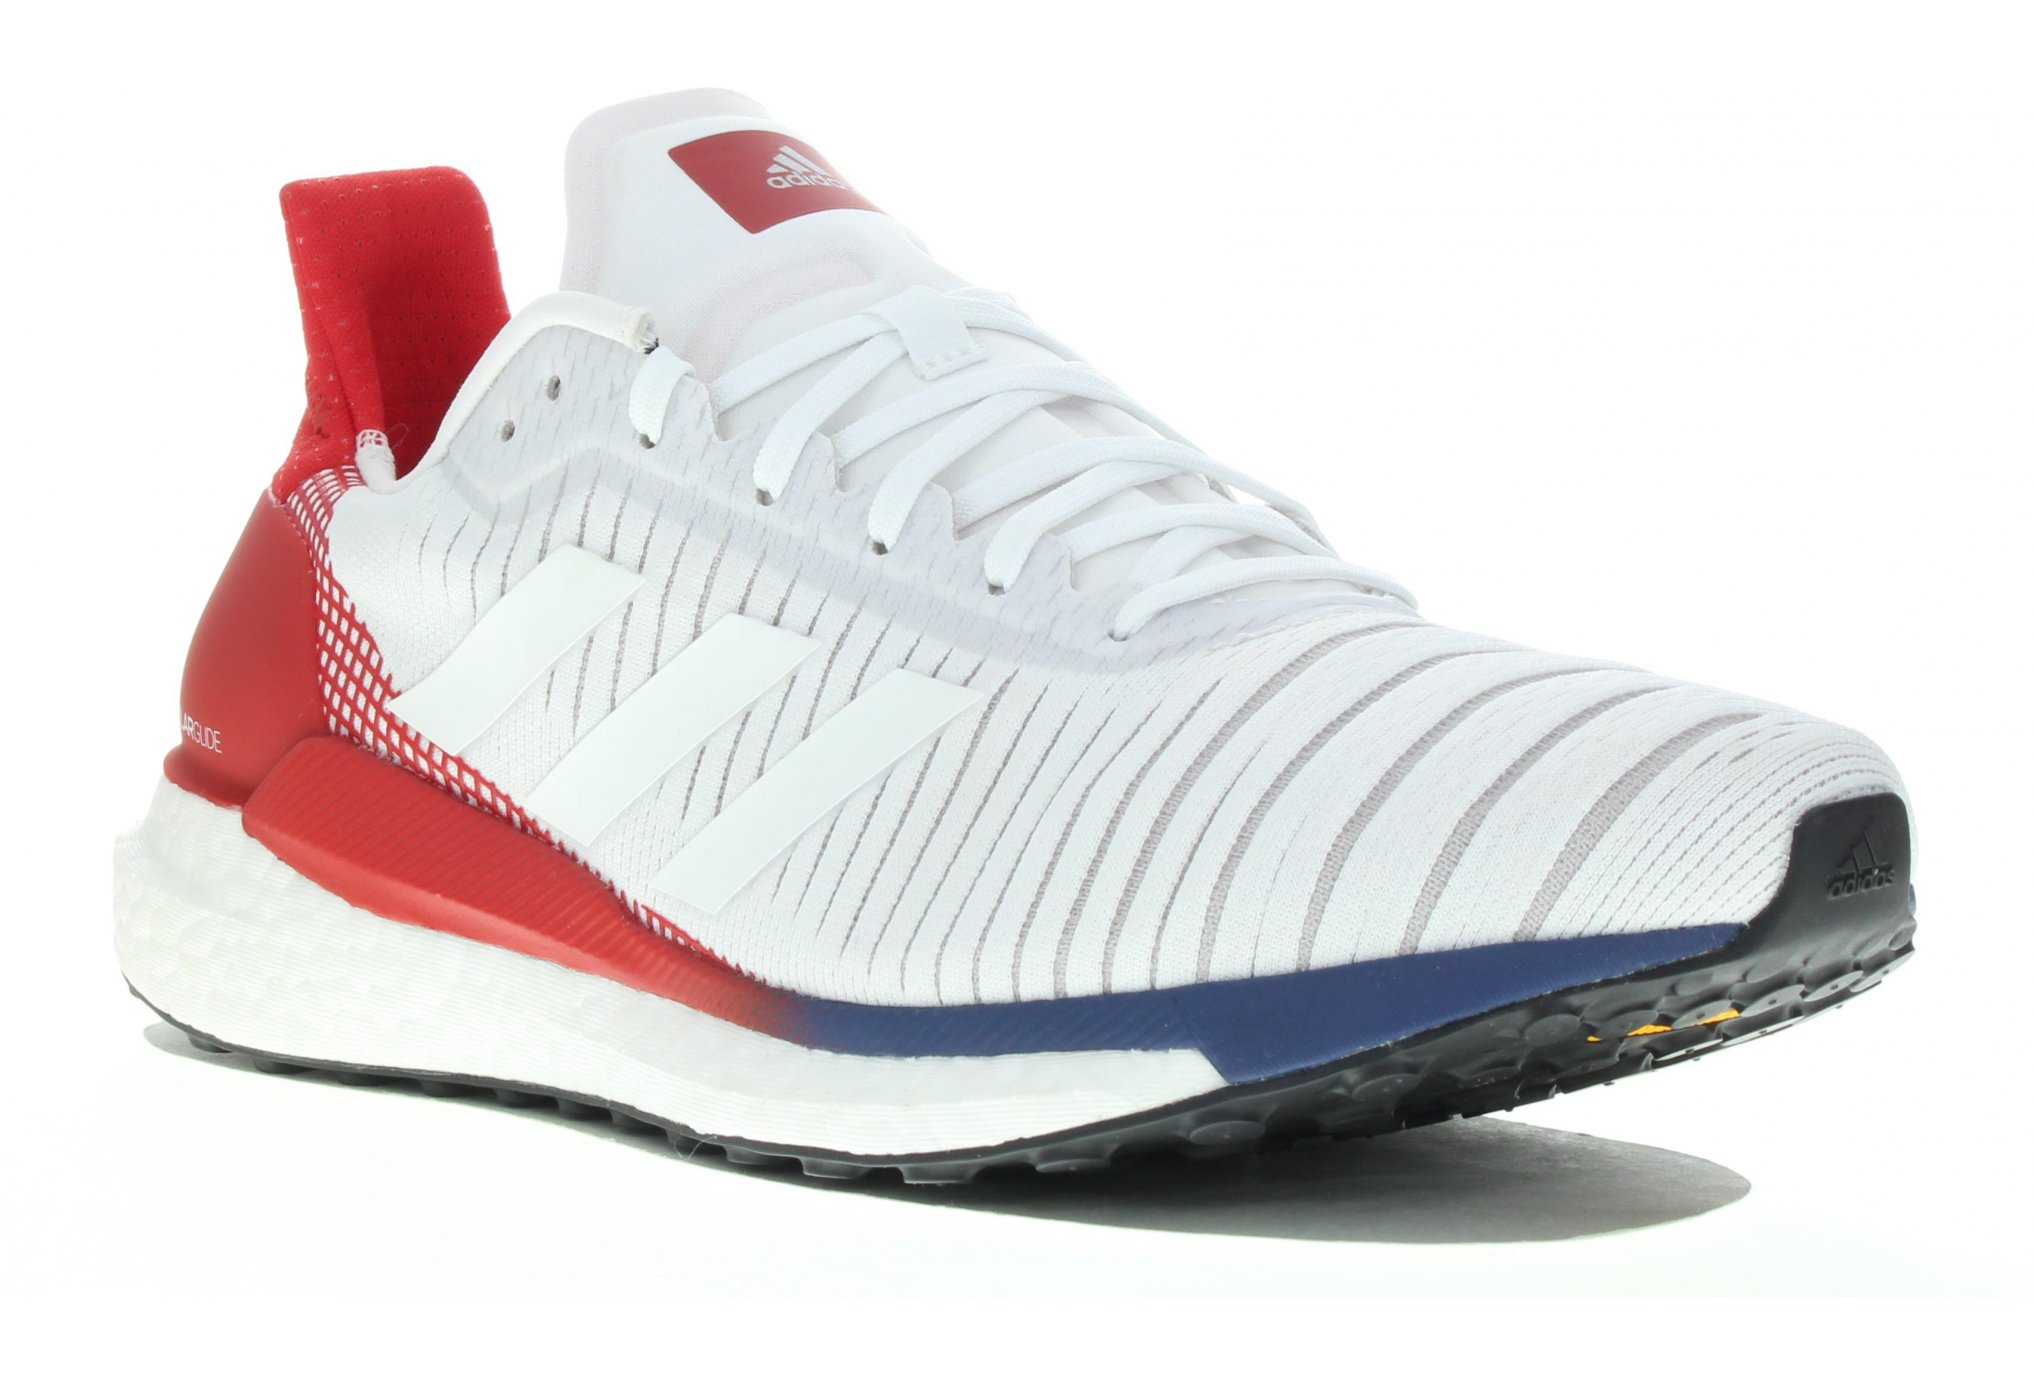 adidas Solar Glide 19 Chaussures homme